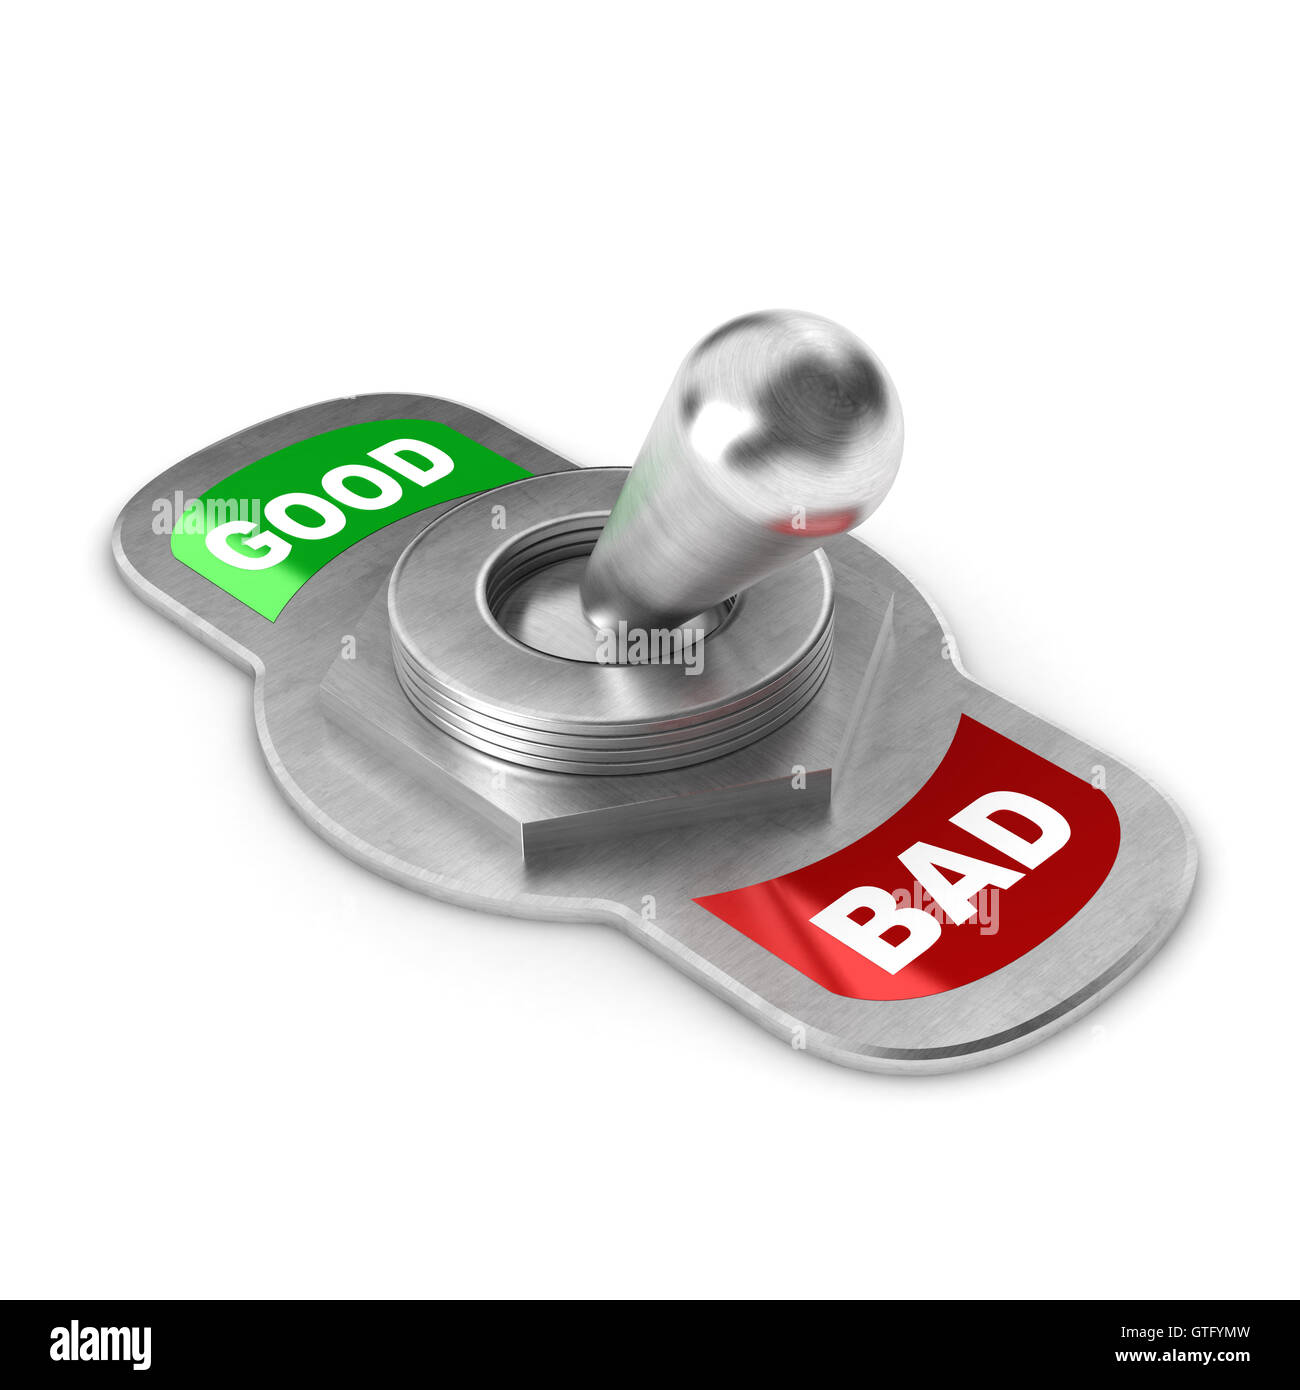 Bad Concept Switch - Stock Image